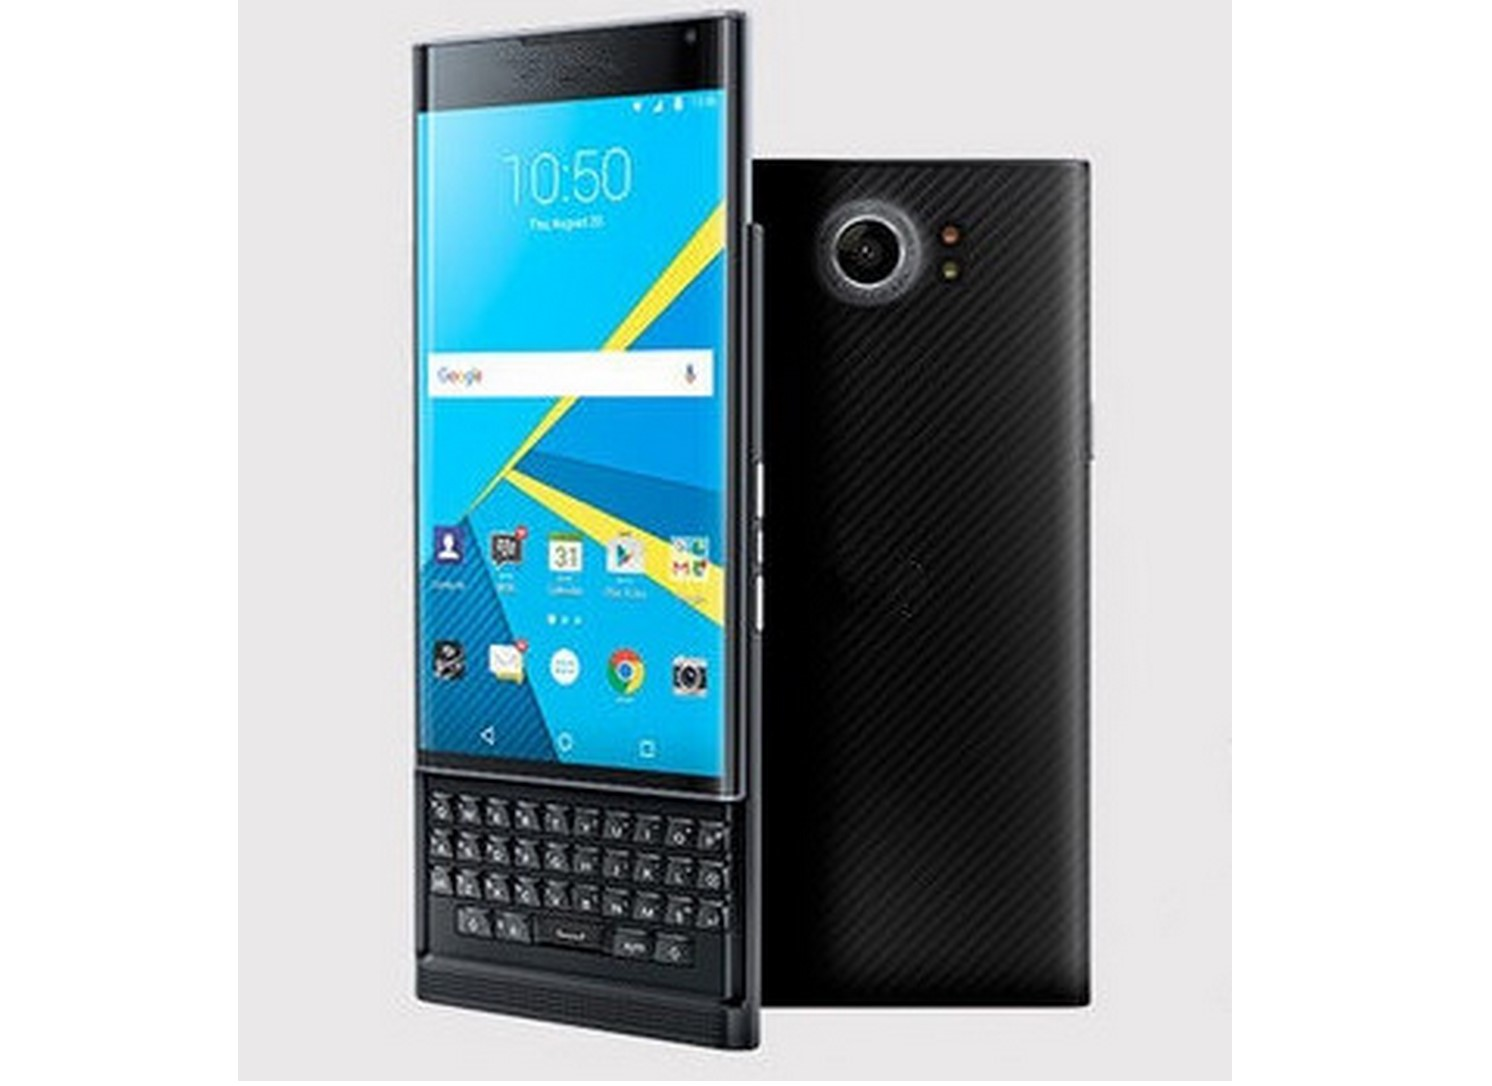 original brand new blackberry priv